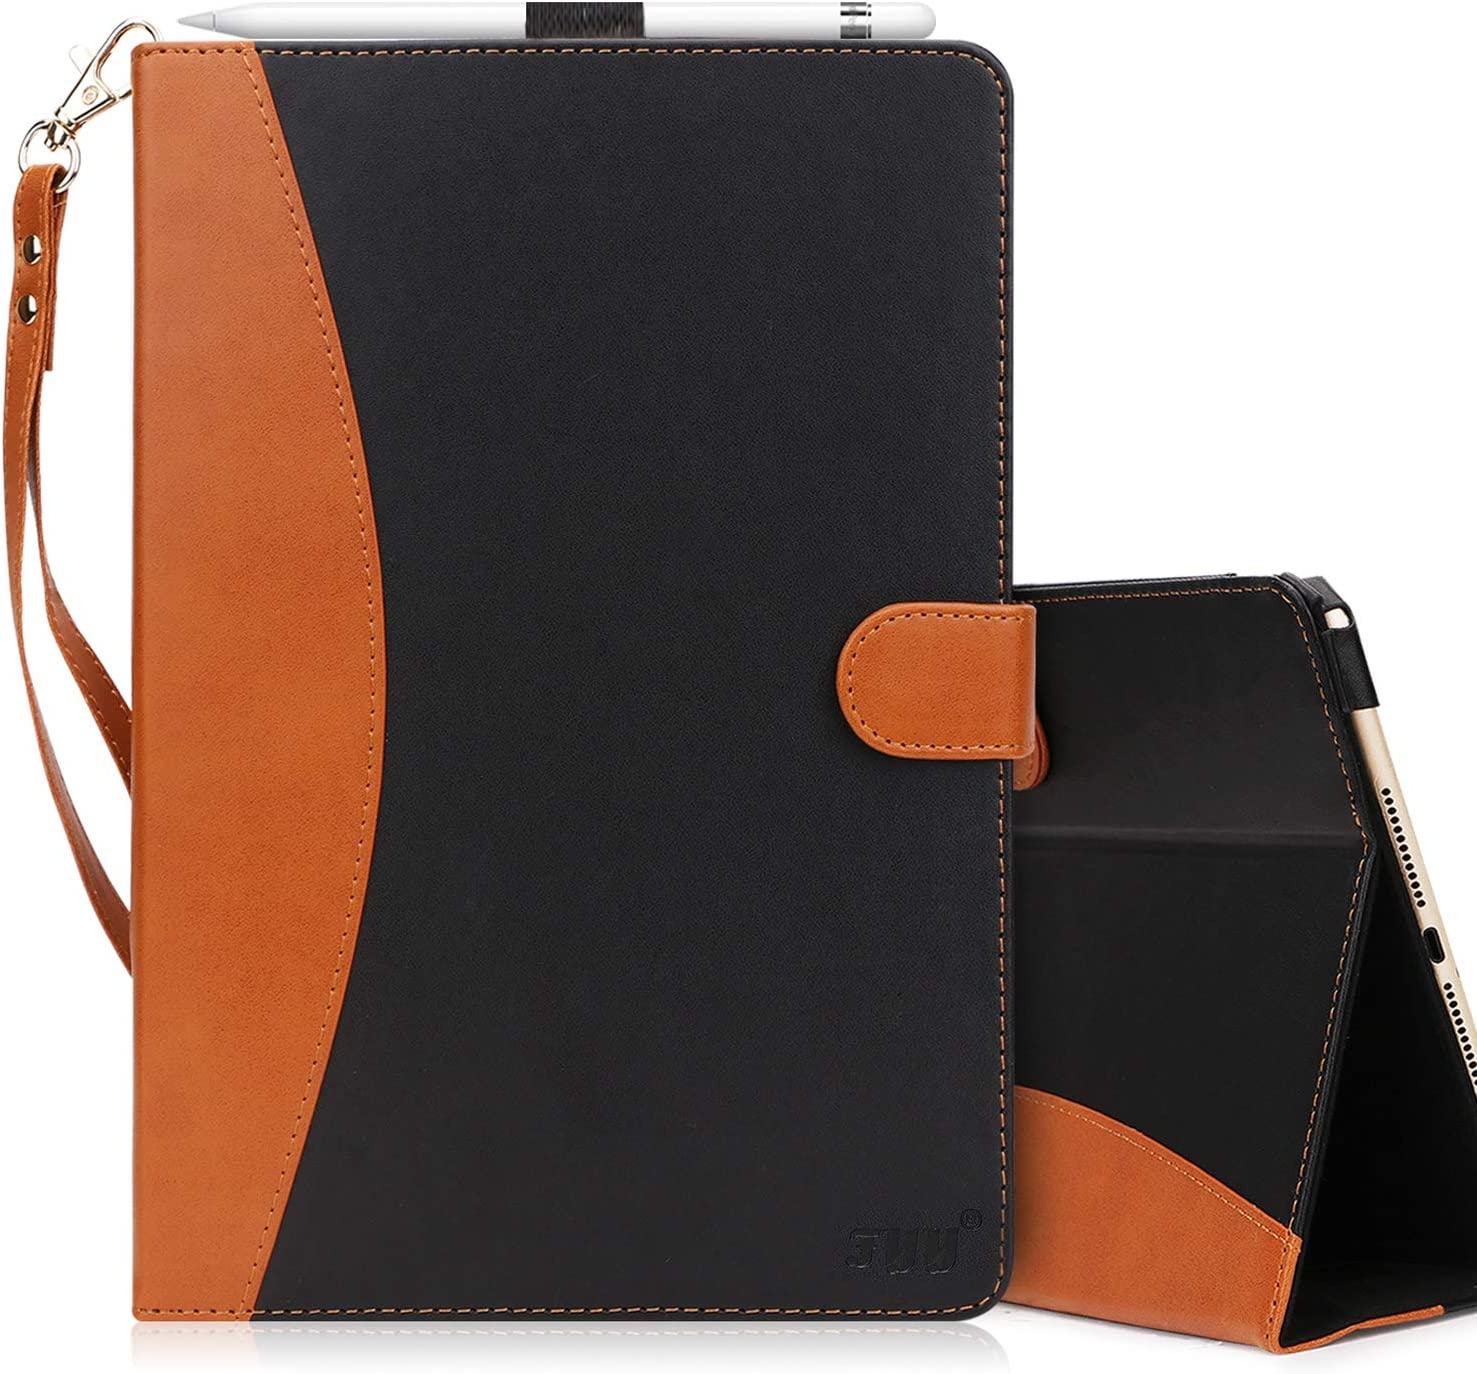 FYY [Leather Case] with [Apple Pencil Holder] for Apple iPad Pro 12.9 Both 2017/2015, Flip Folio Stand Protective Case with [Auto Sleep Wake Function], Multiple Stand Angles, Card Slots Black